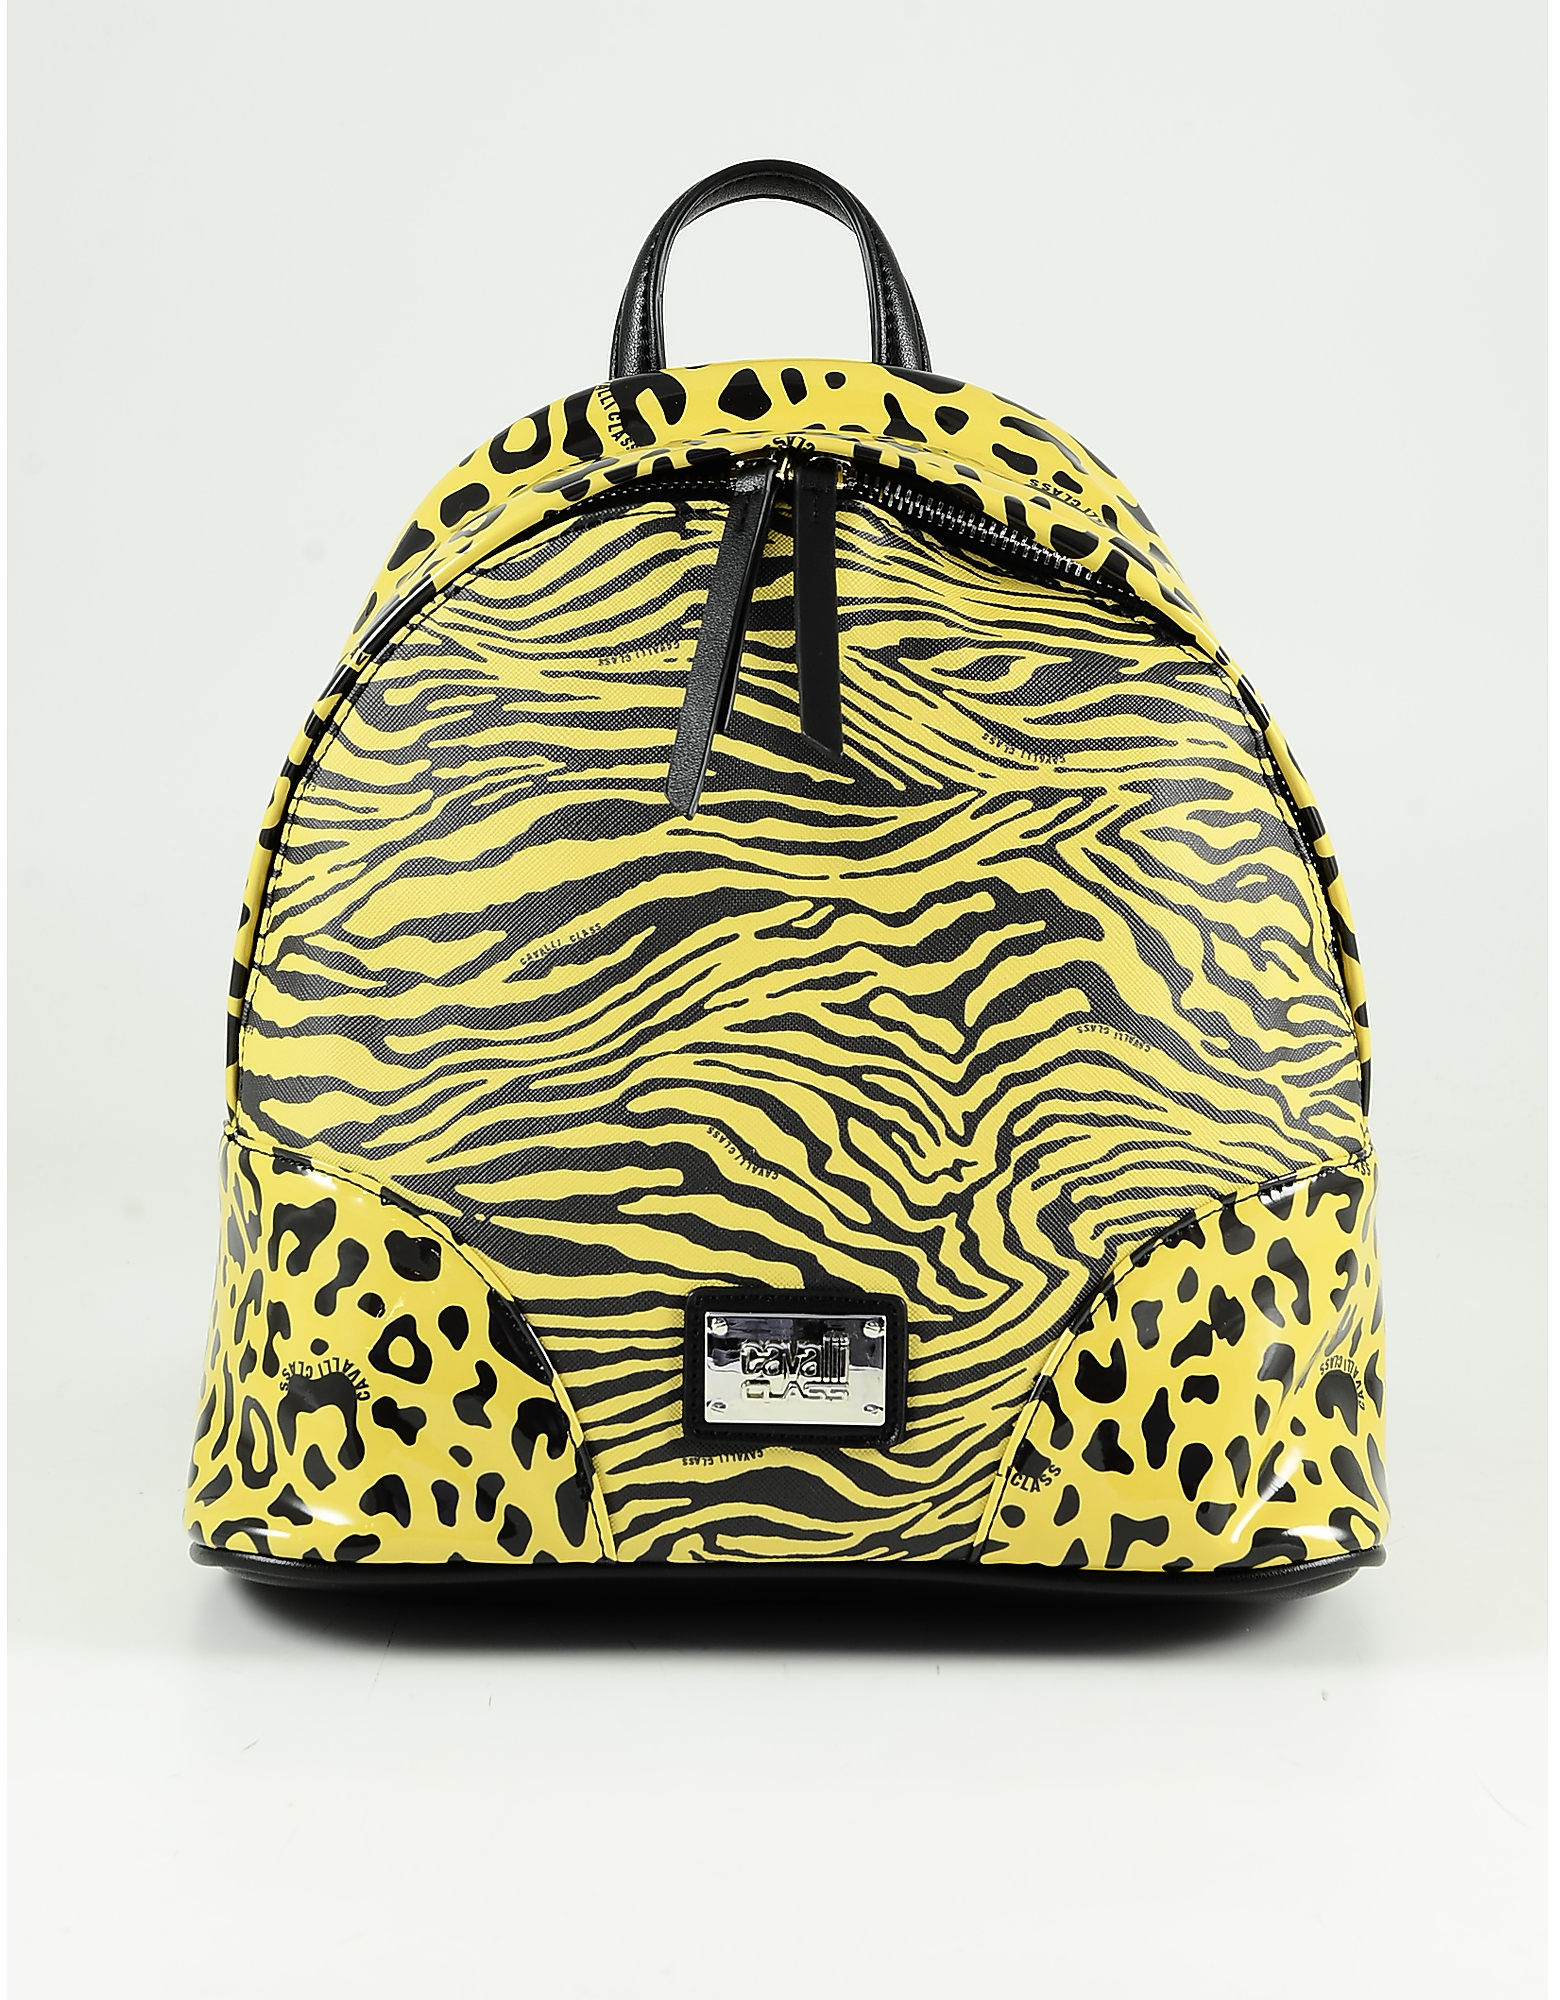 Class Roberto Cavalli Yellow & Black Animal Print Backpack